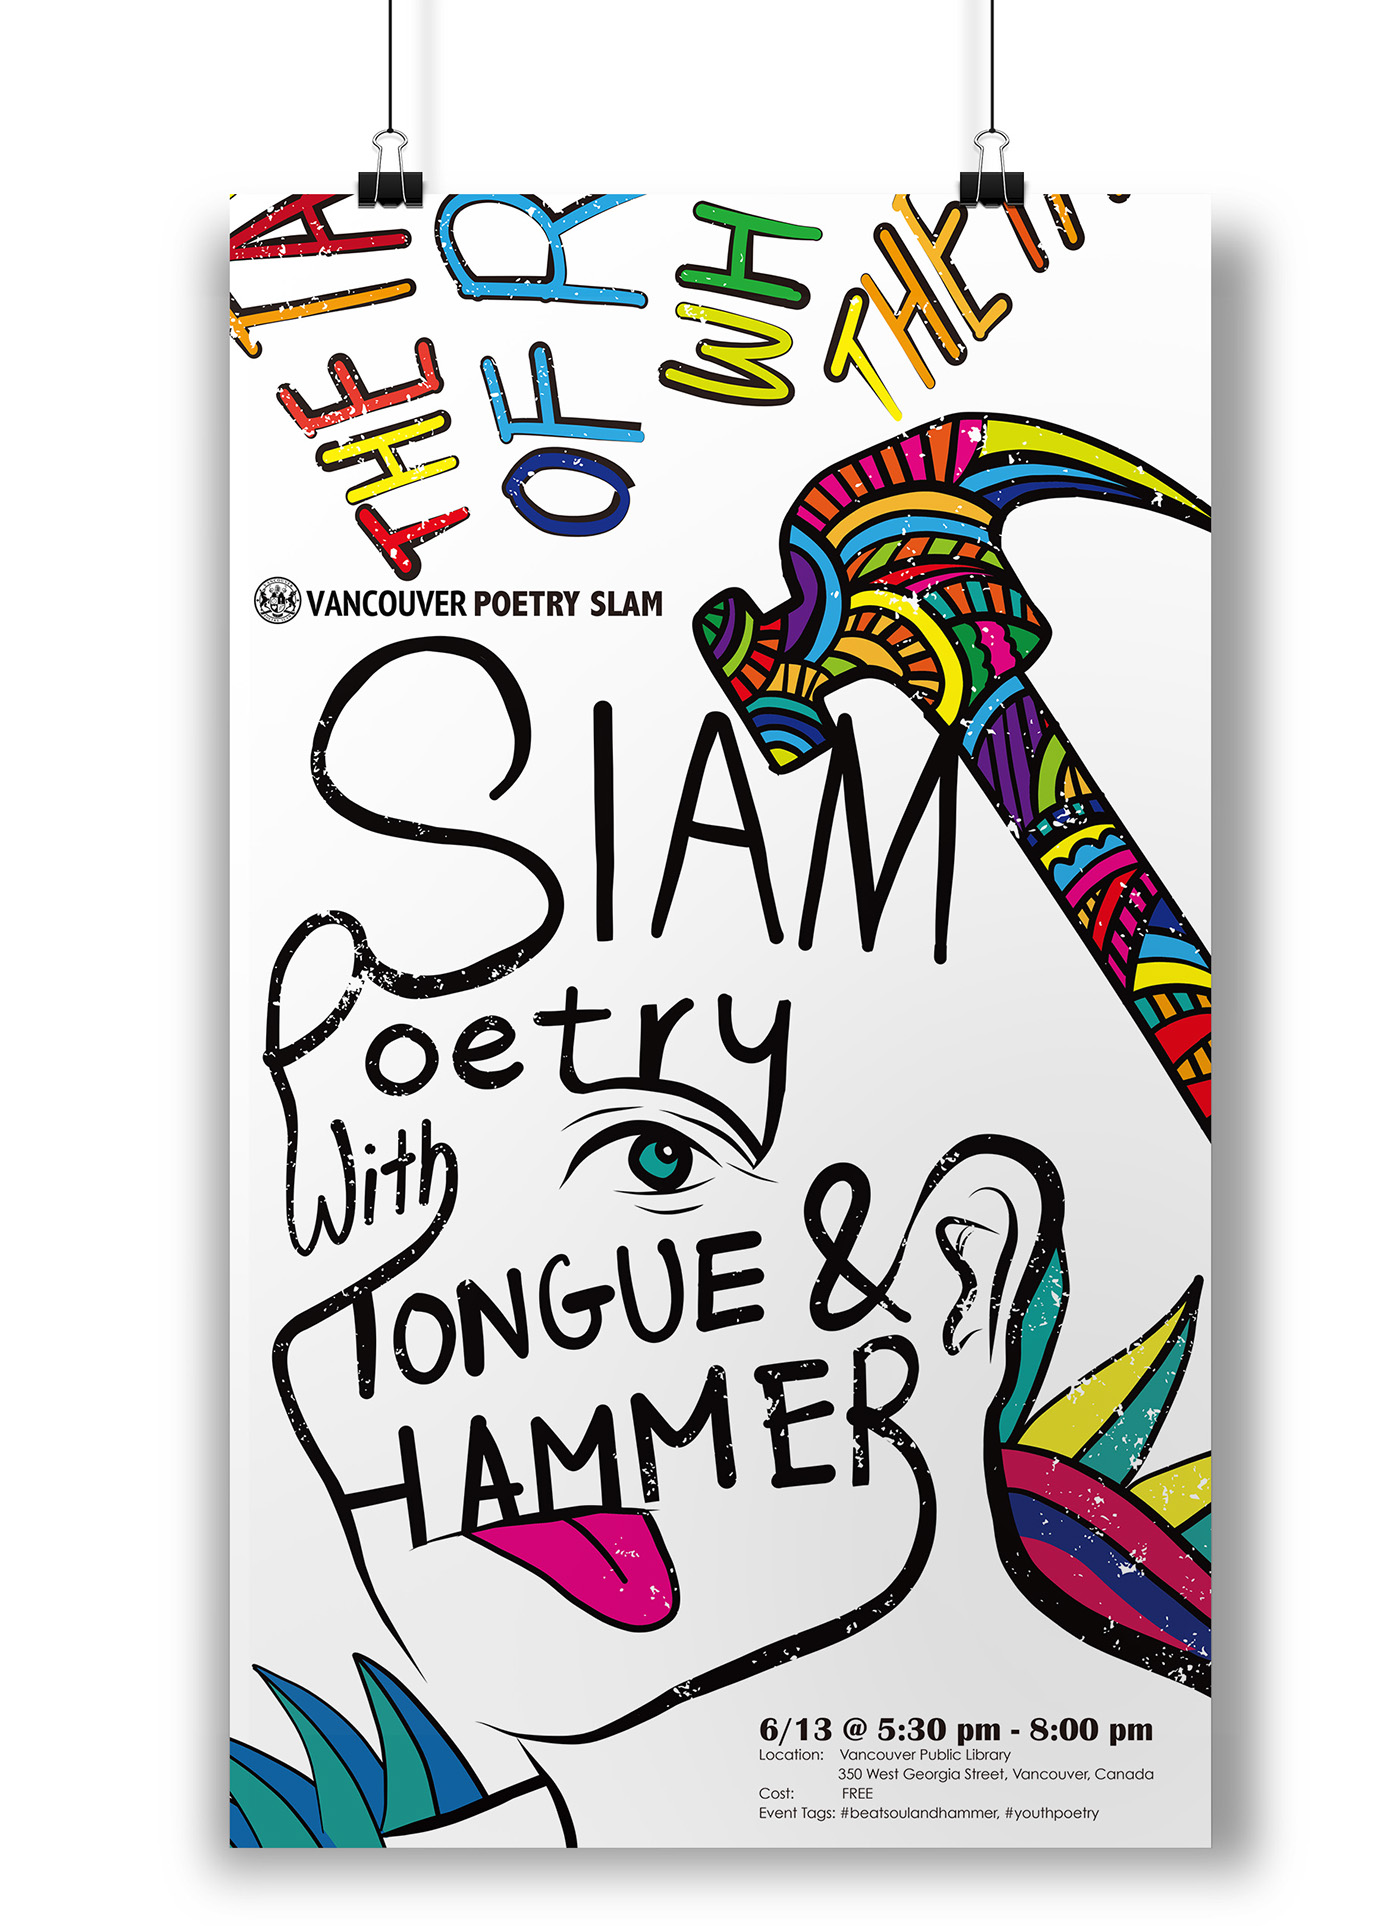 Poster design vancouver - The Slam Poetry With Tongue And Hammer Is A Poster Design Cooperate With An Album And Ui Design For Vancouver Poetry Slam The Series Comes With A Poster